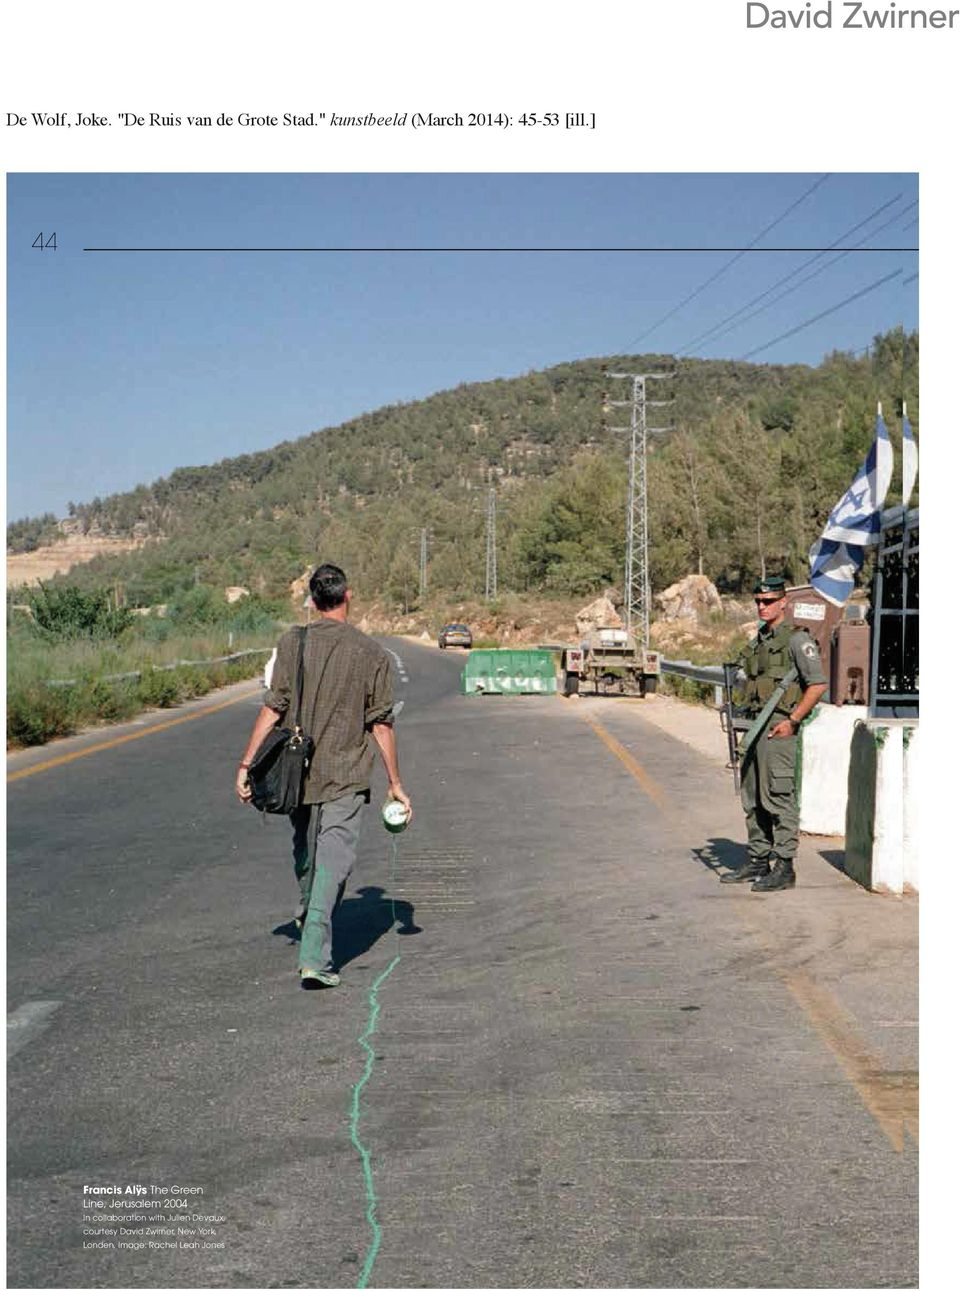 ] 44 Francis Alÿs The Green Line, Jerusalem 2004 In